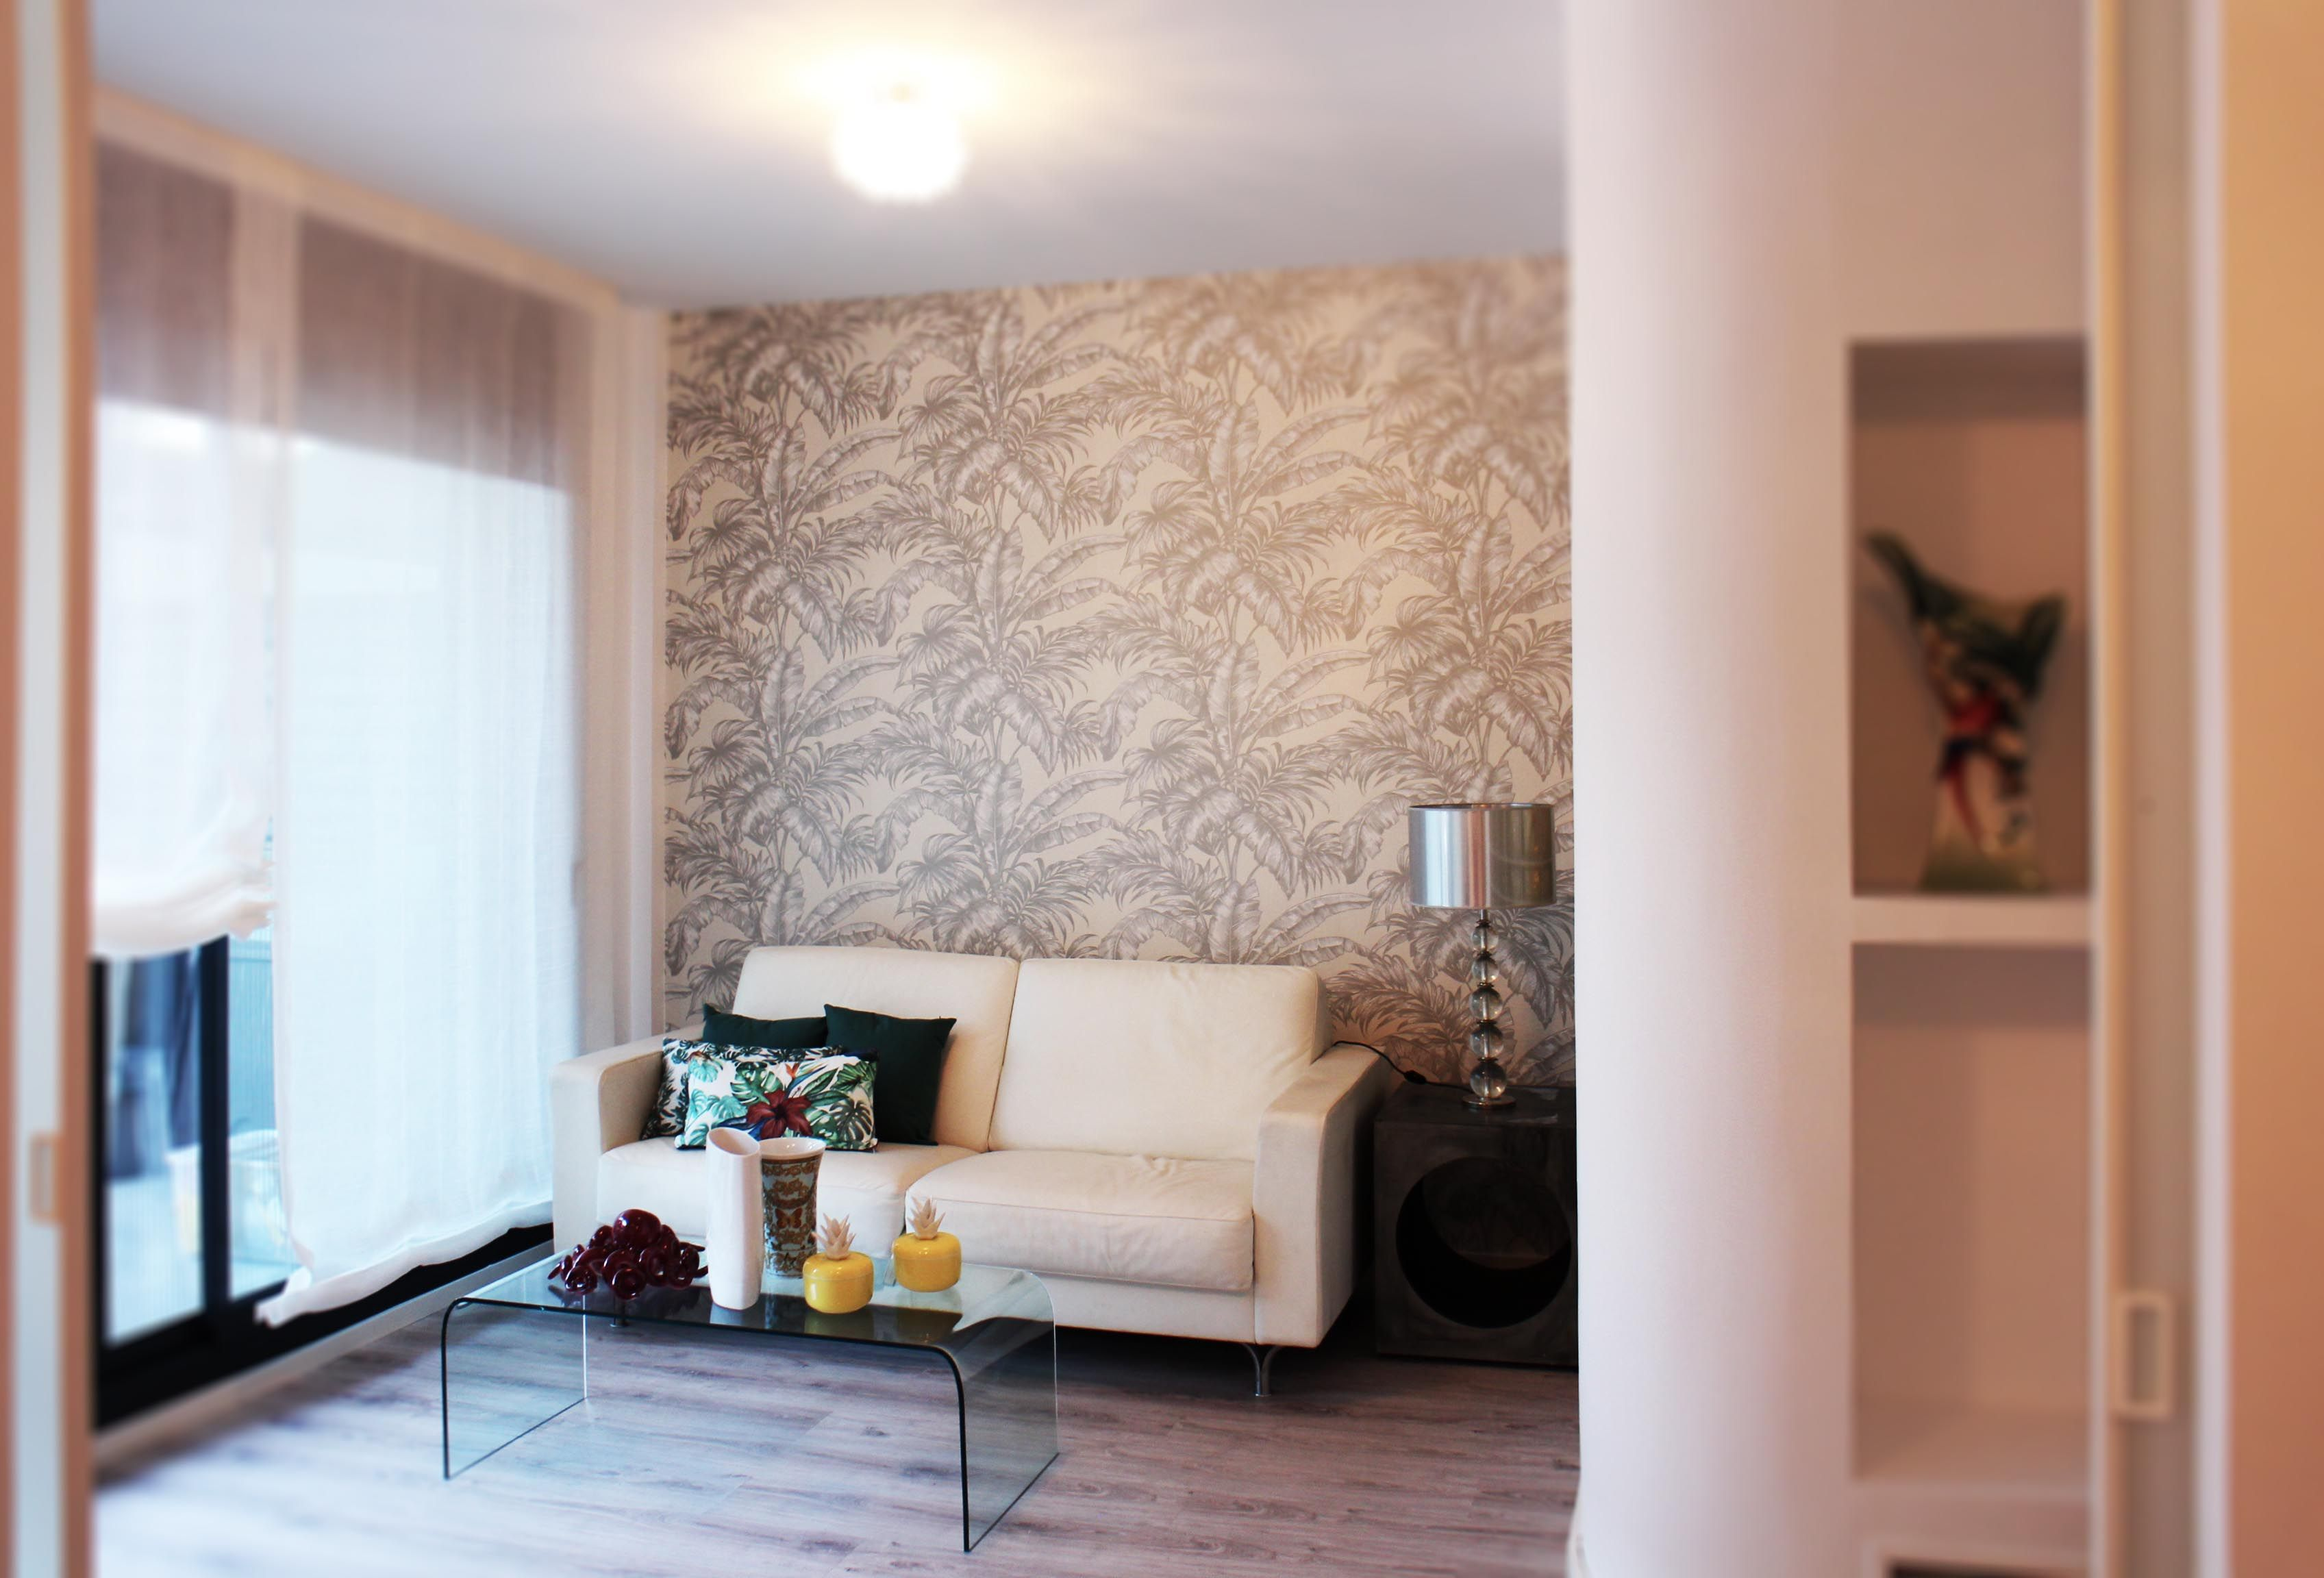 Lounge area Master bedroom. Silver palm leaves wallpaper